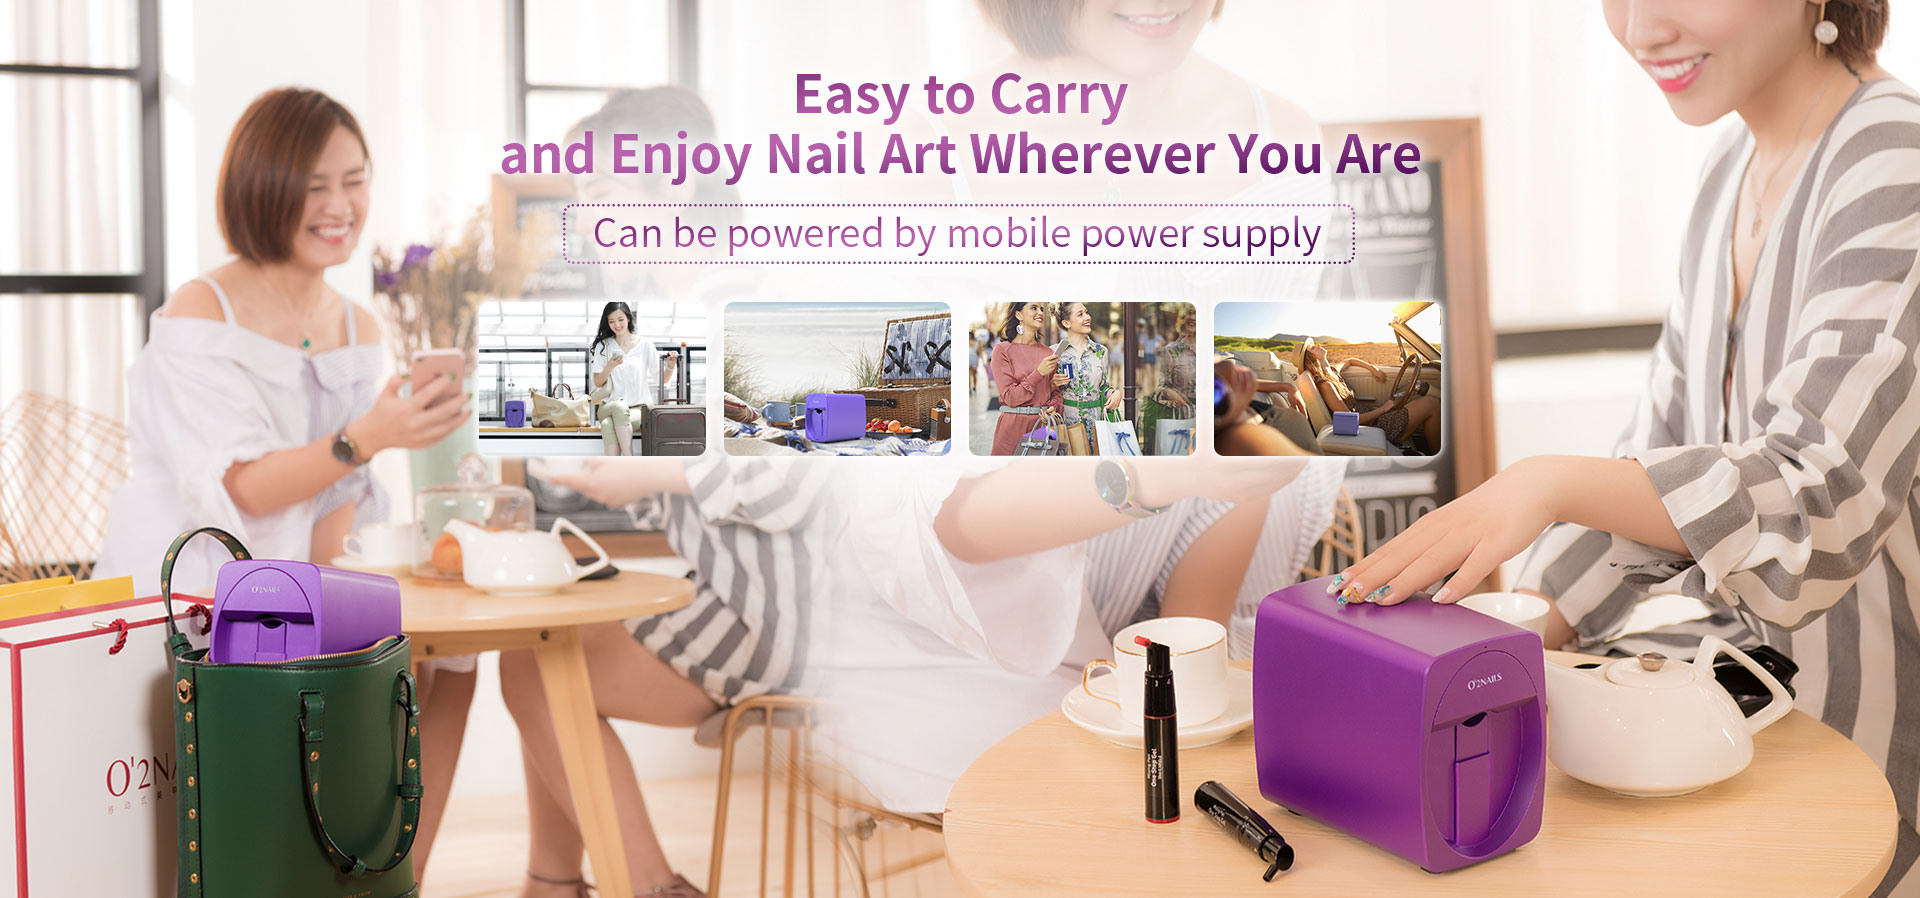 Easy to Carry and Enjoy Nail Art Wherever You Are